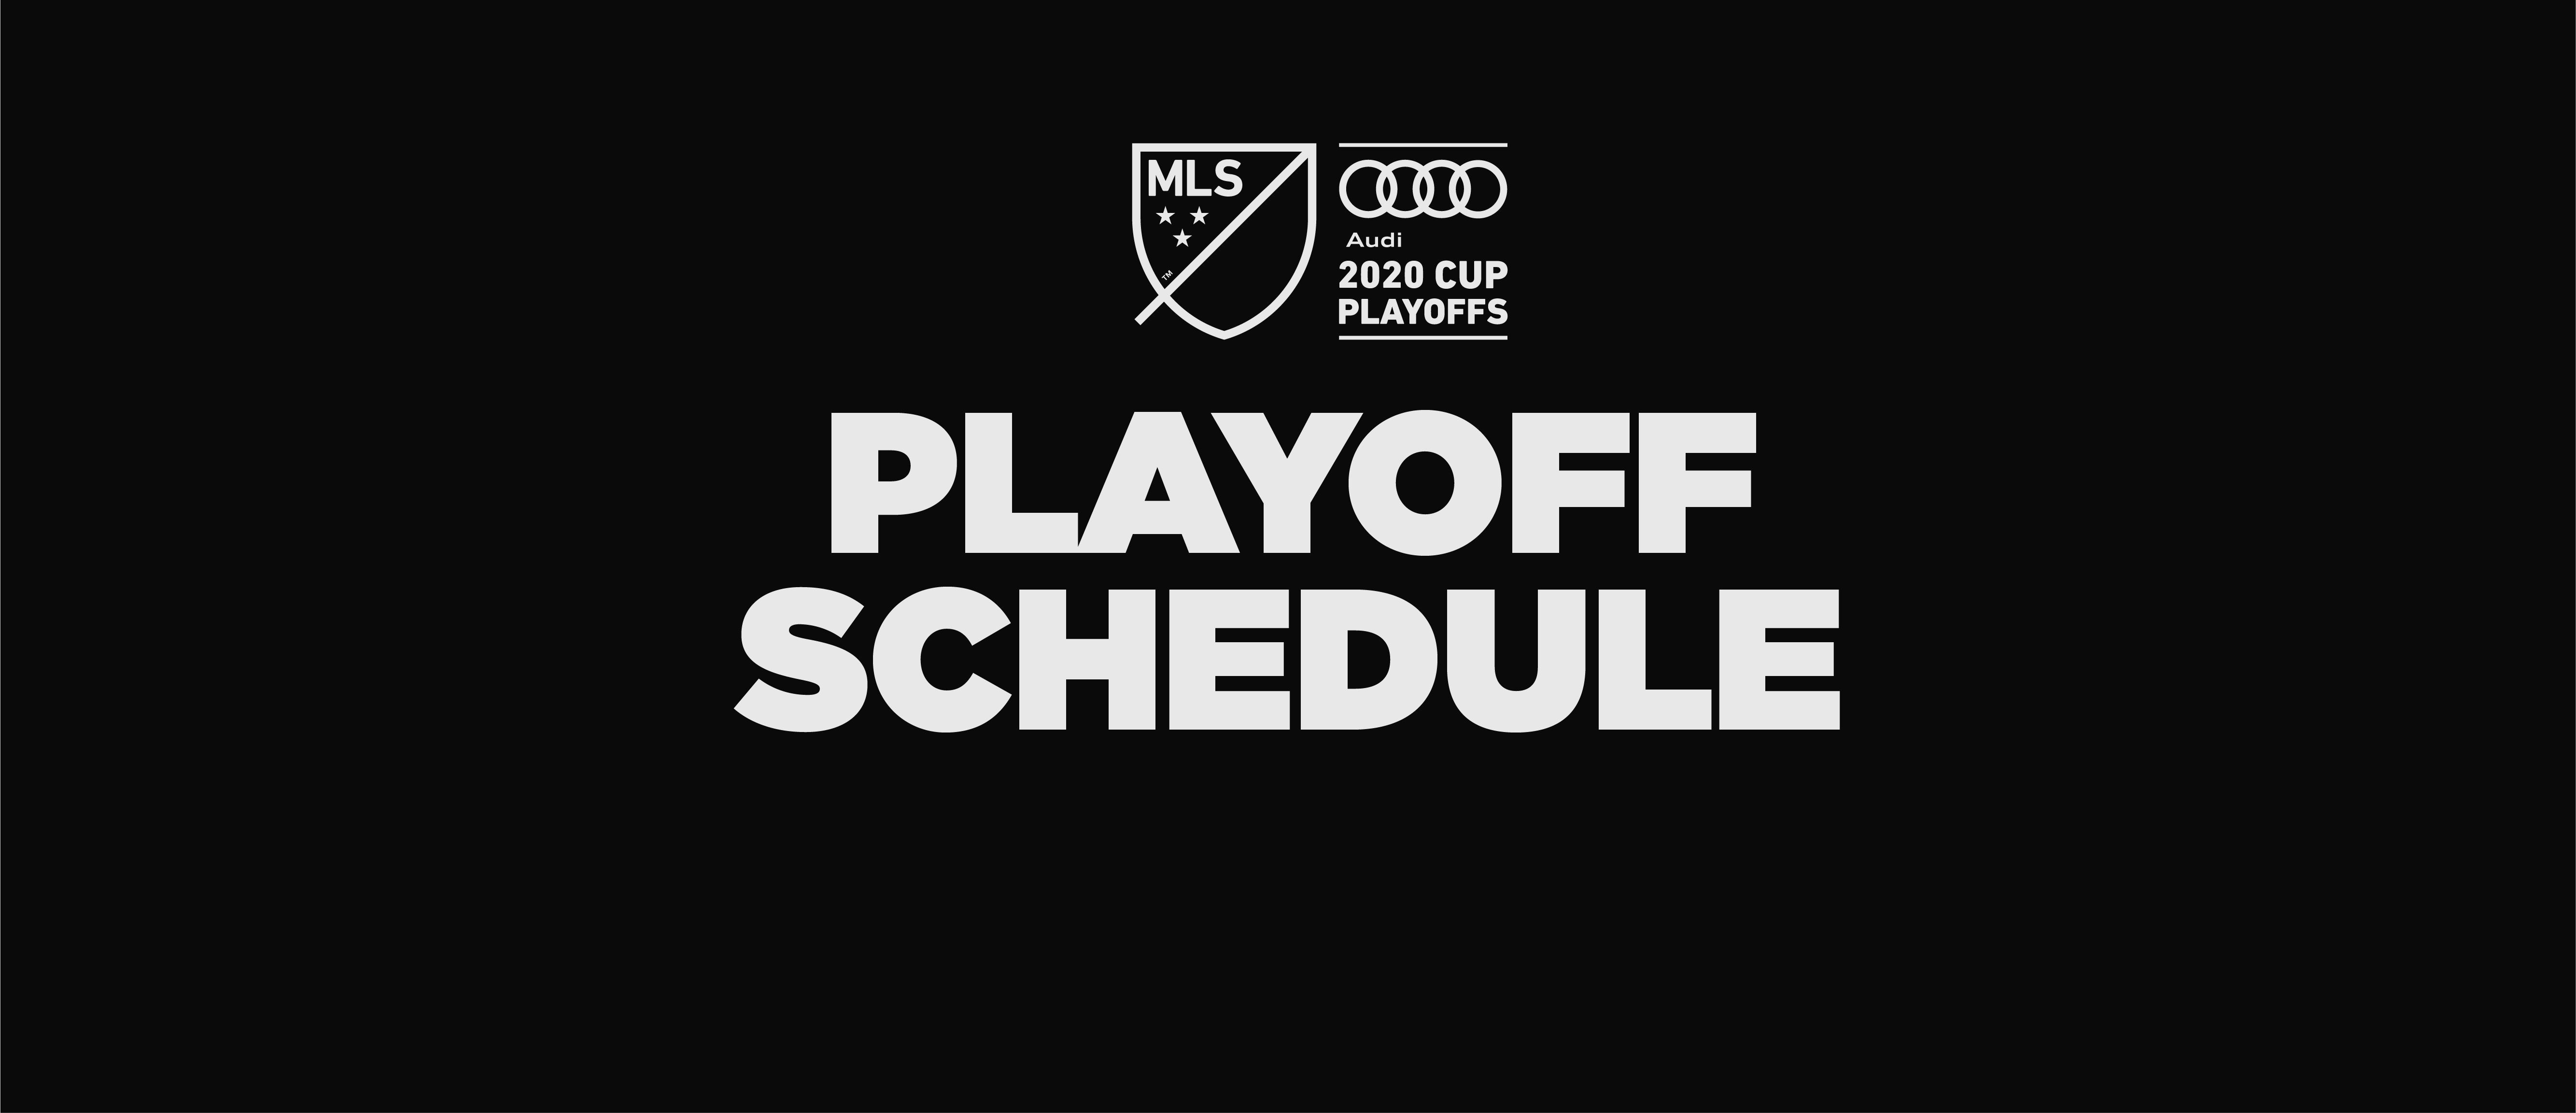 Audi 2020 MLS Cup Playoffs: Match schedule, dates, times and TV | MLSSoccer.com